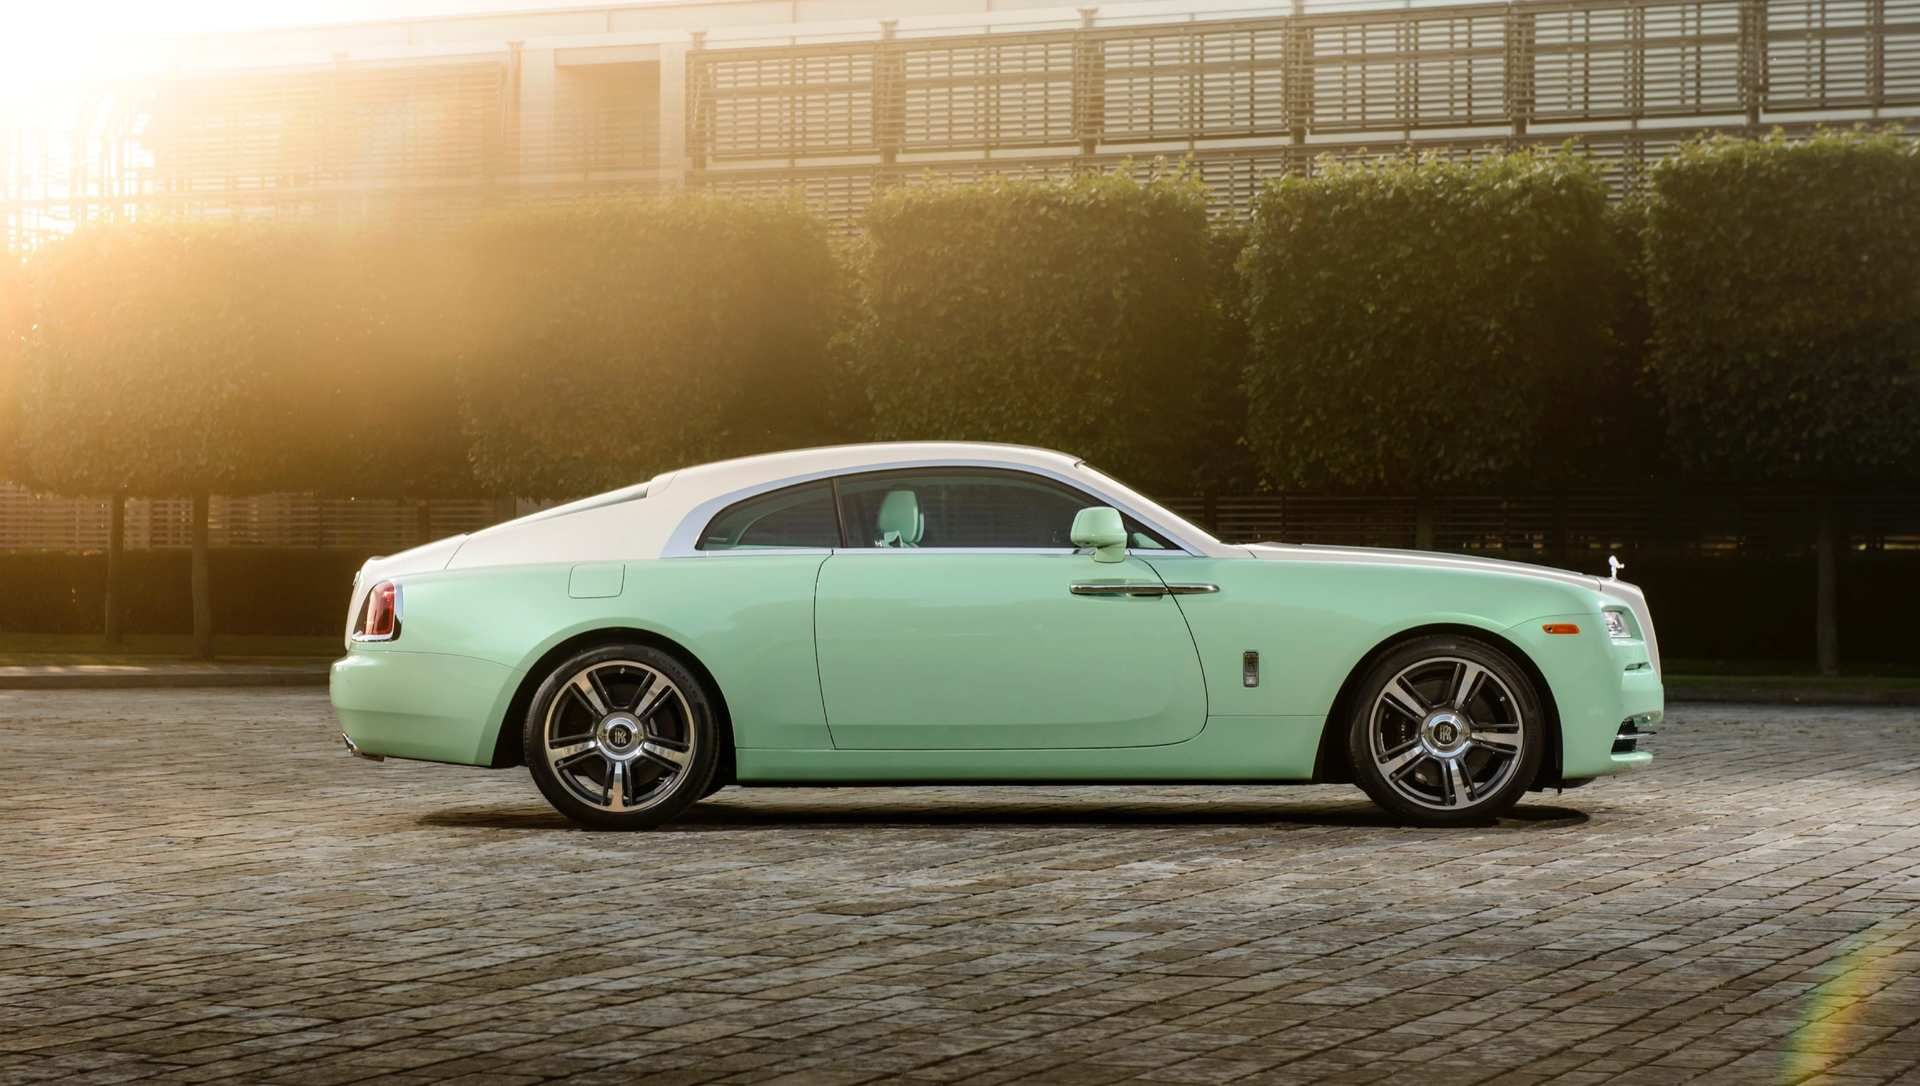 Rolls-Royce Wraith Michael Fux commission, full car profile, wide shot, lime green